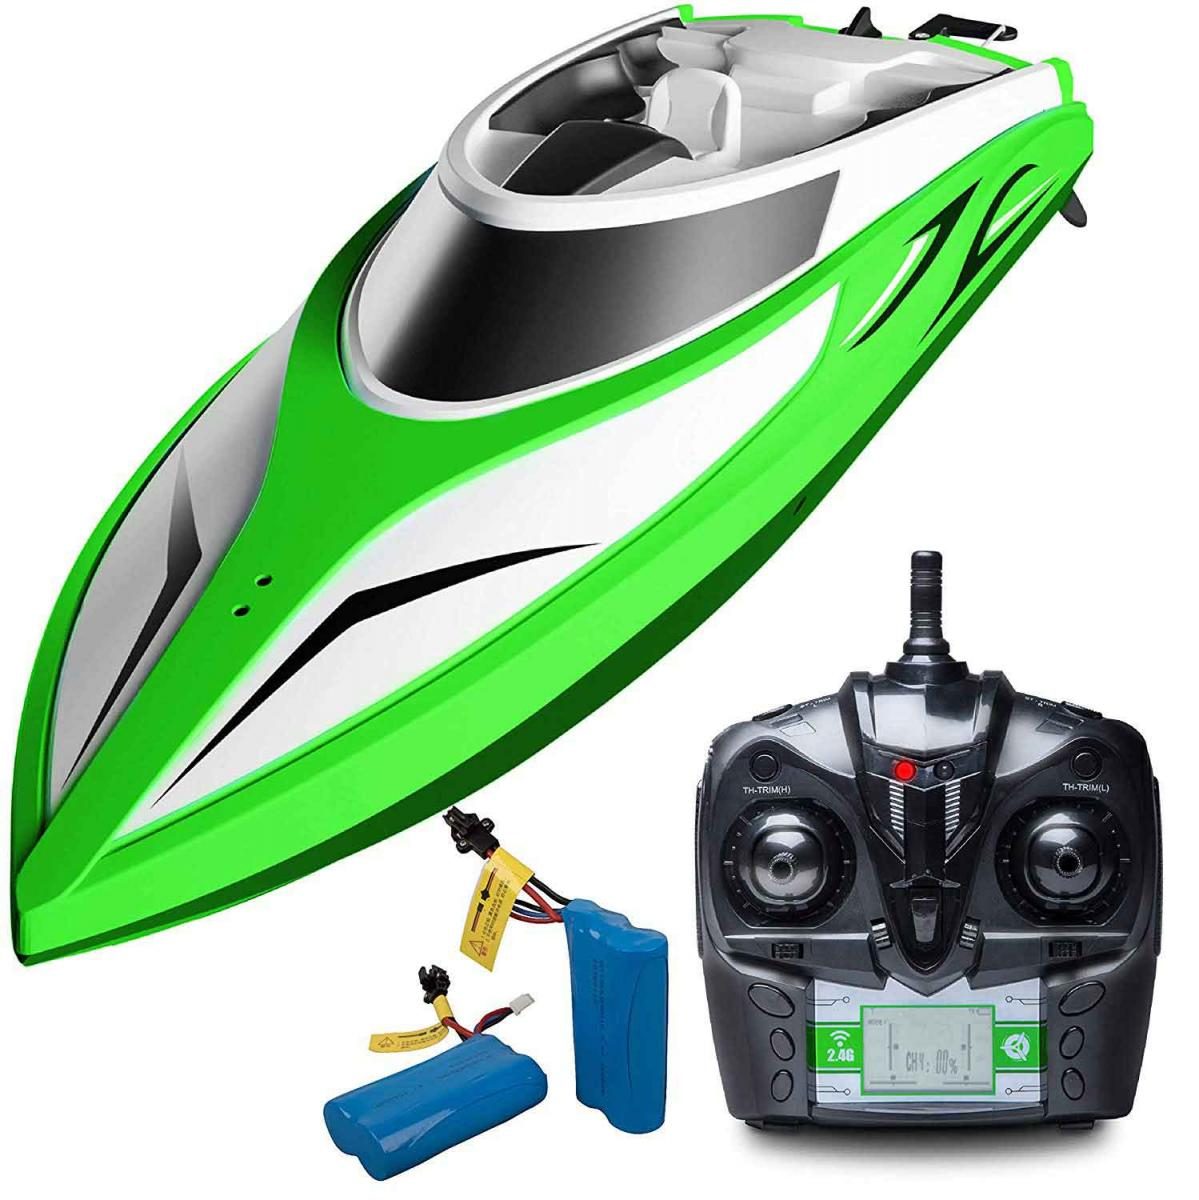 Remote Control Boat Motorized Pool Toy